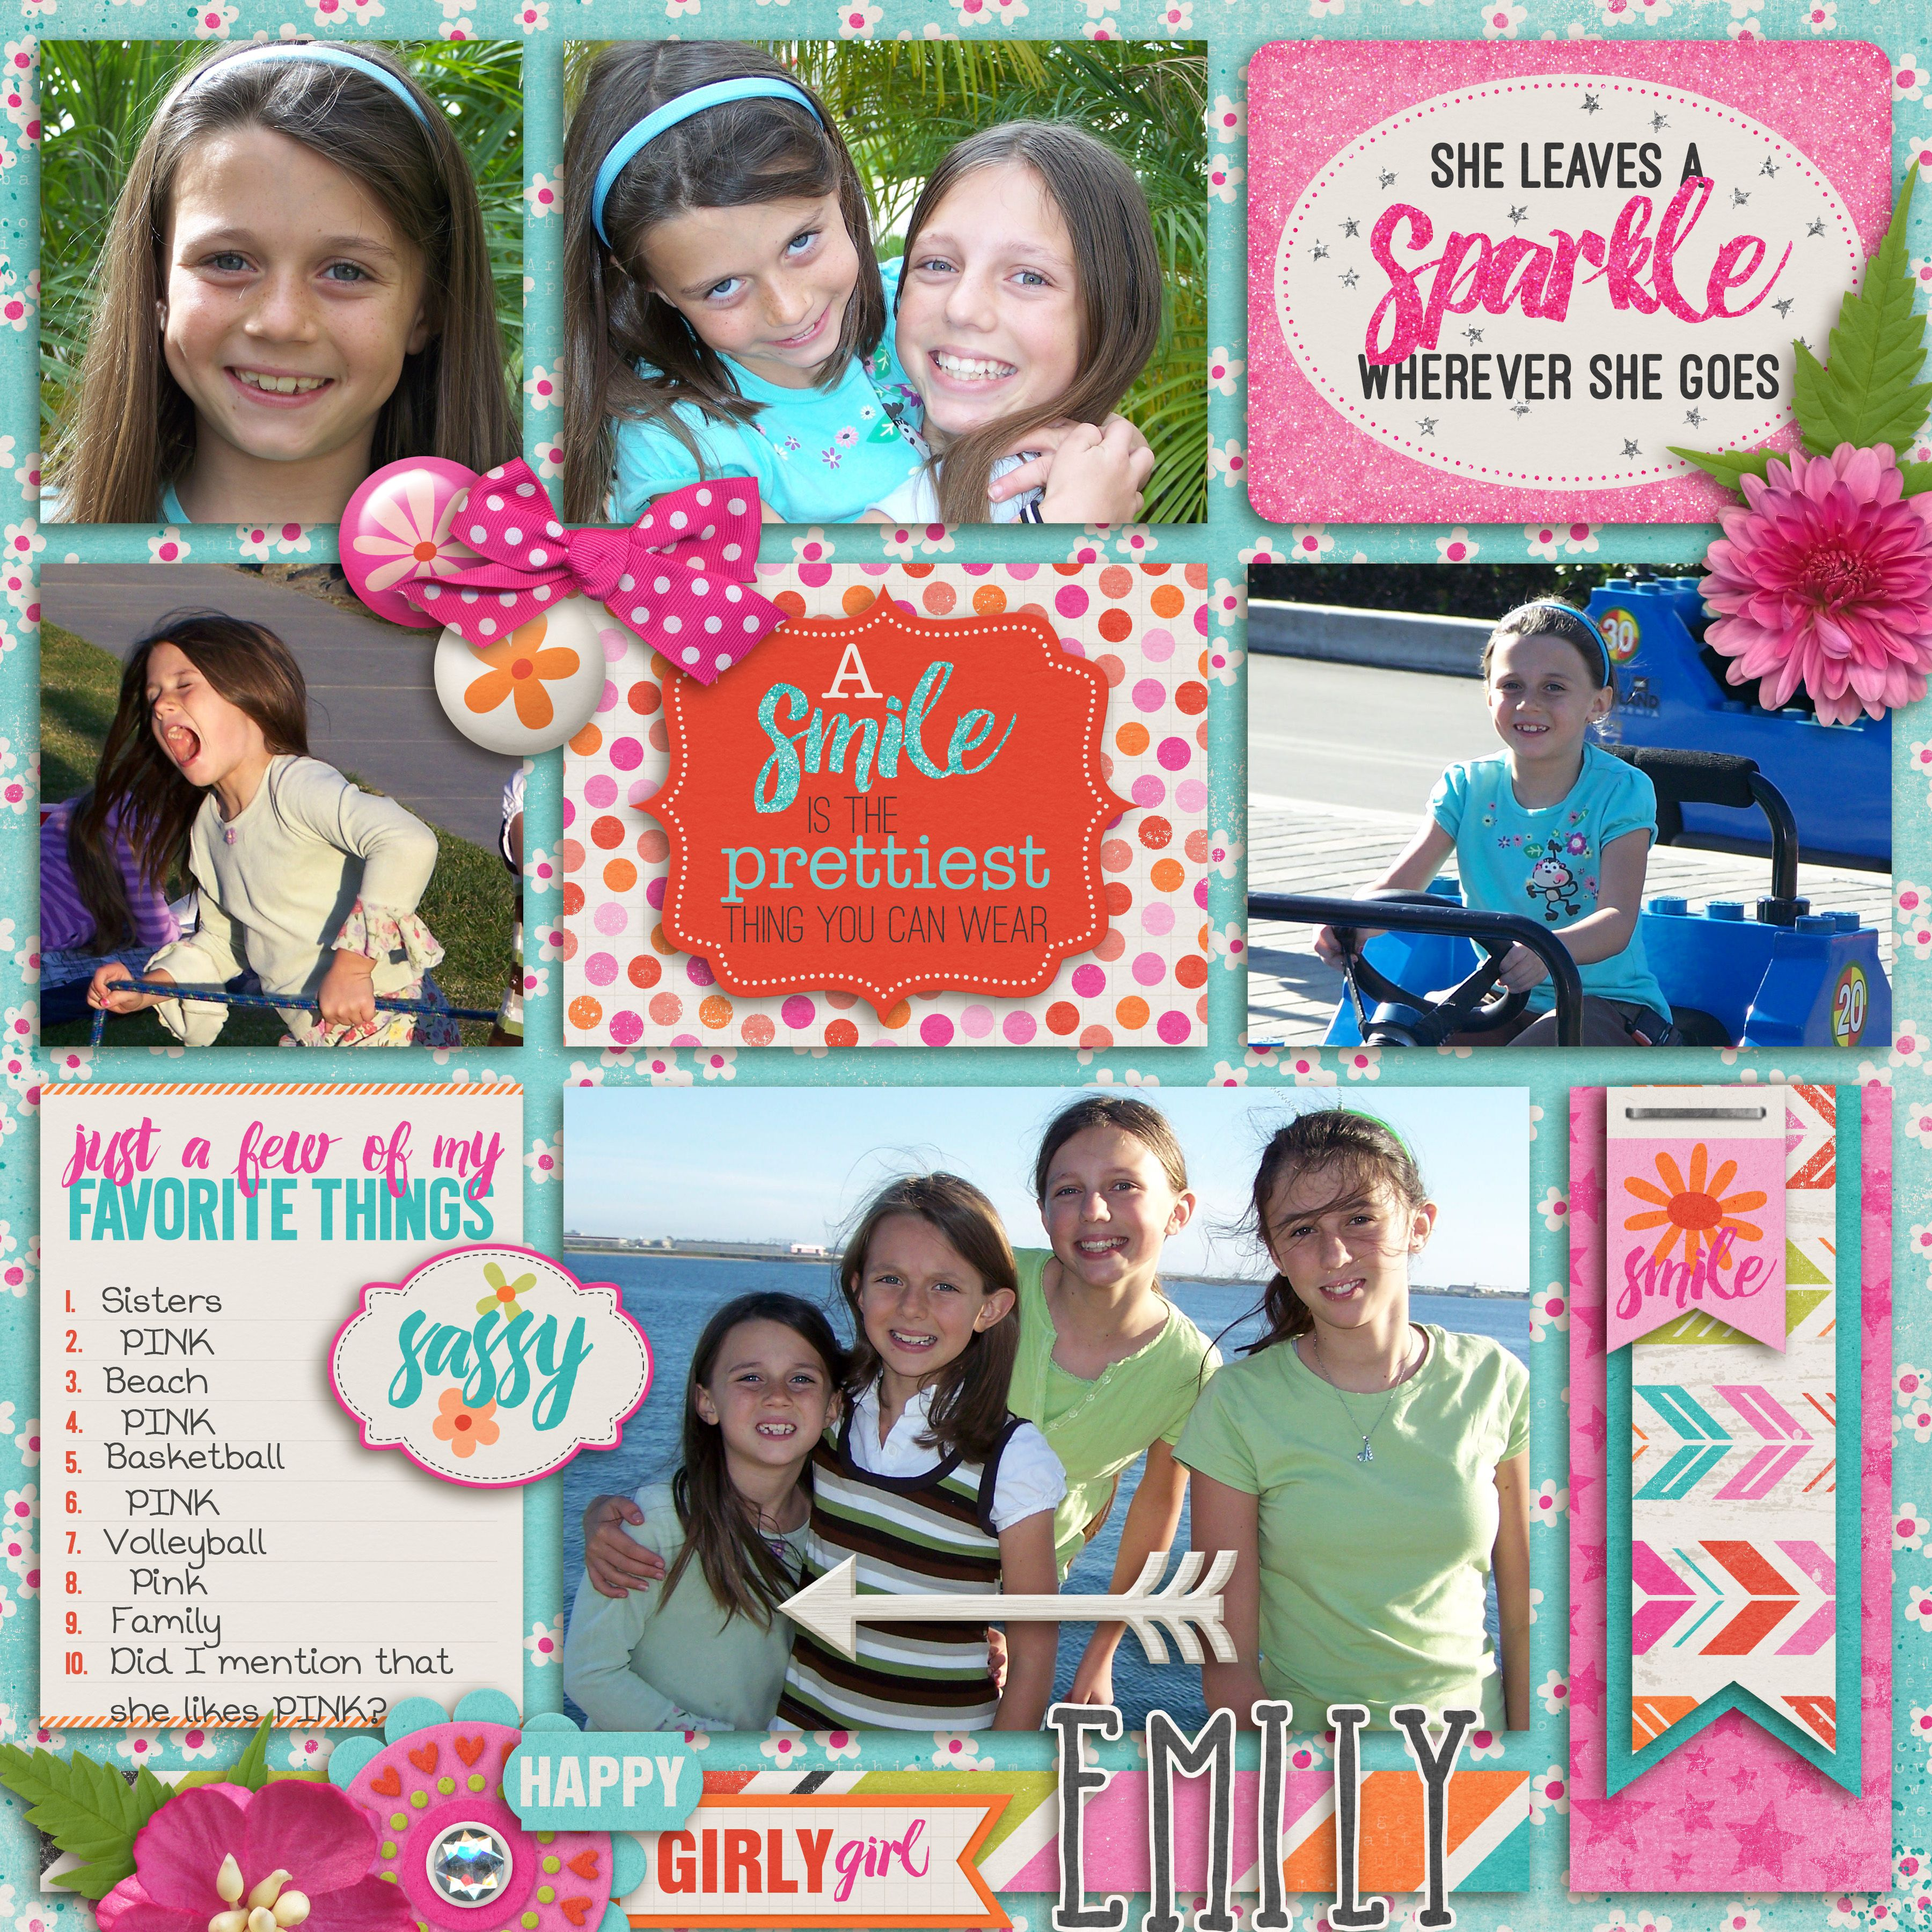 Such a sweetheart!!  We love our Emily! I used BOY MEETS GIRL BUNDLE from DIGILICIOUS DESIGNS found here:  http://www.sweetshoppedesigns.com/sweetshoppe/product.php?productid=30731&cat=748&page=1 and a template from Connie Princes Project 2015 May Collection found here:  http://store.gingerscraps.net/Project-2015-May-12x12-Temps-CU-Ok.html